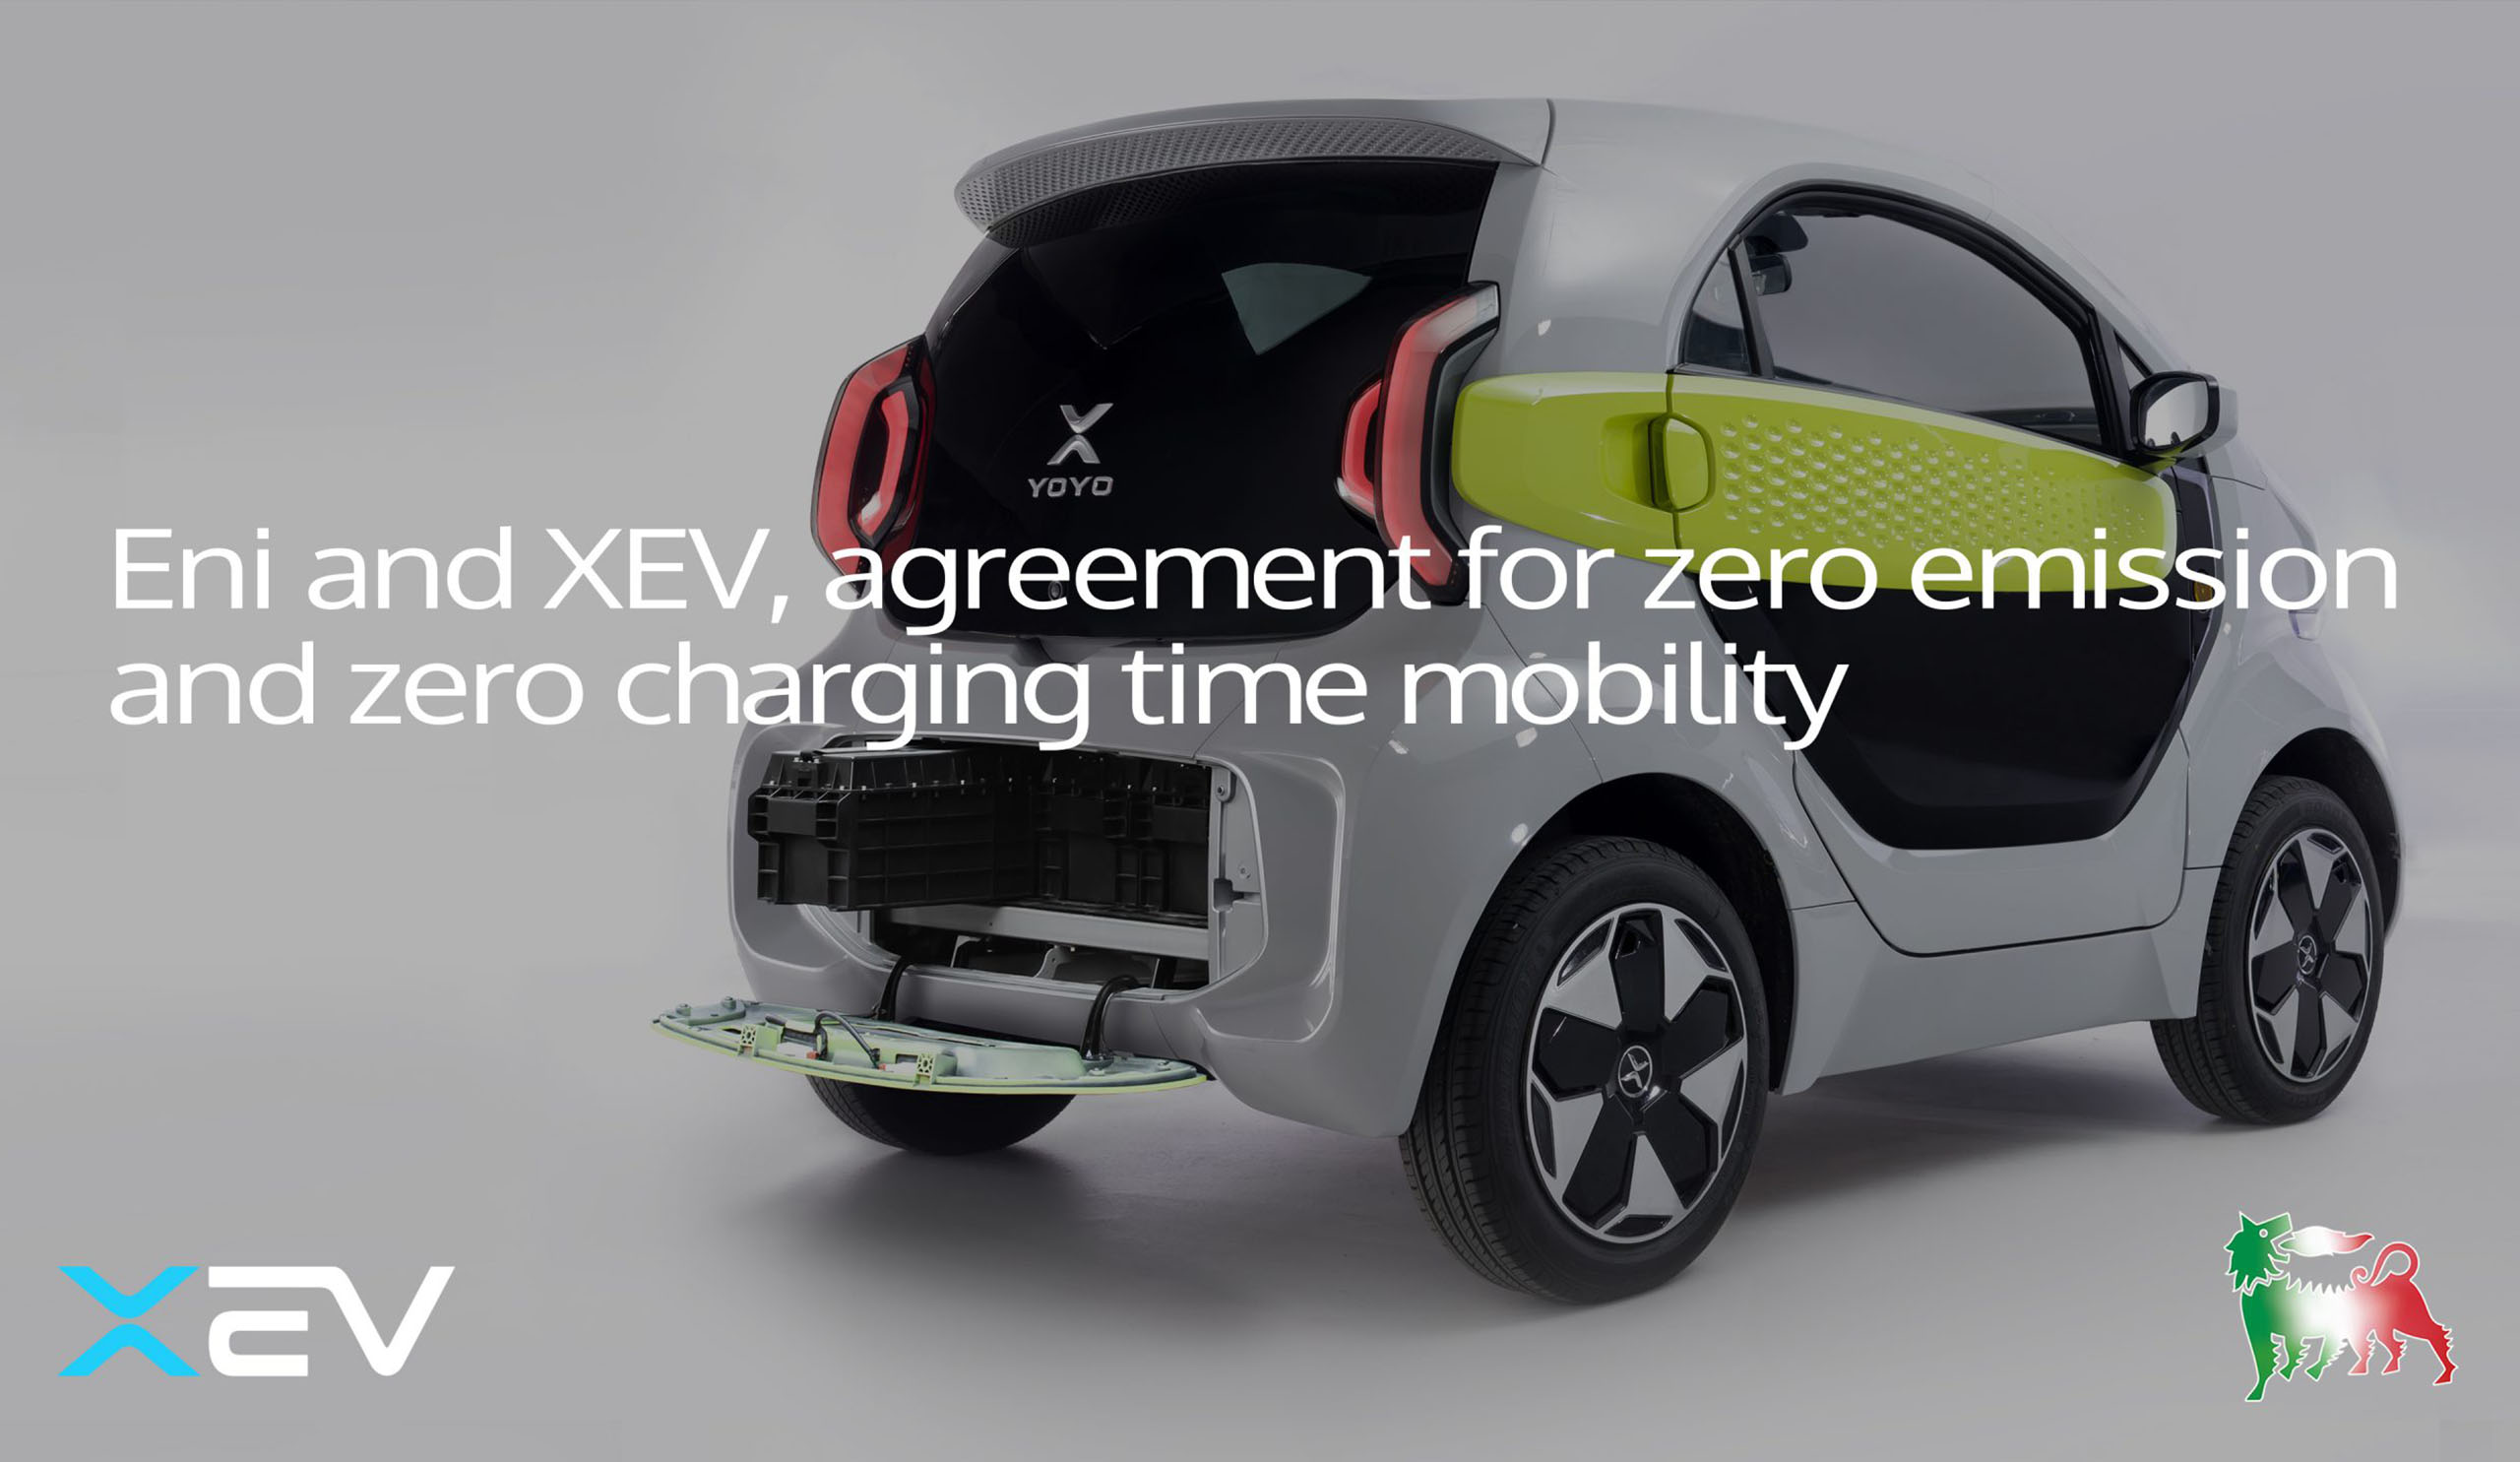 Eni and XEV, agreement for zero emission and zero charging time mobility